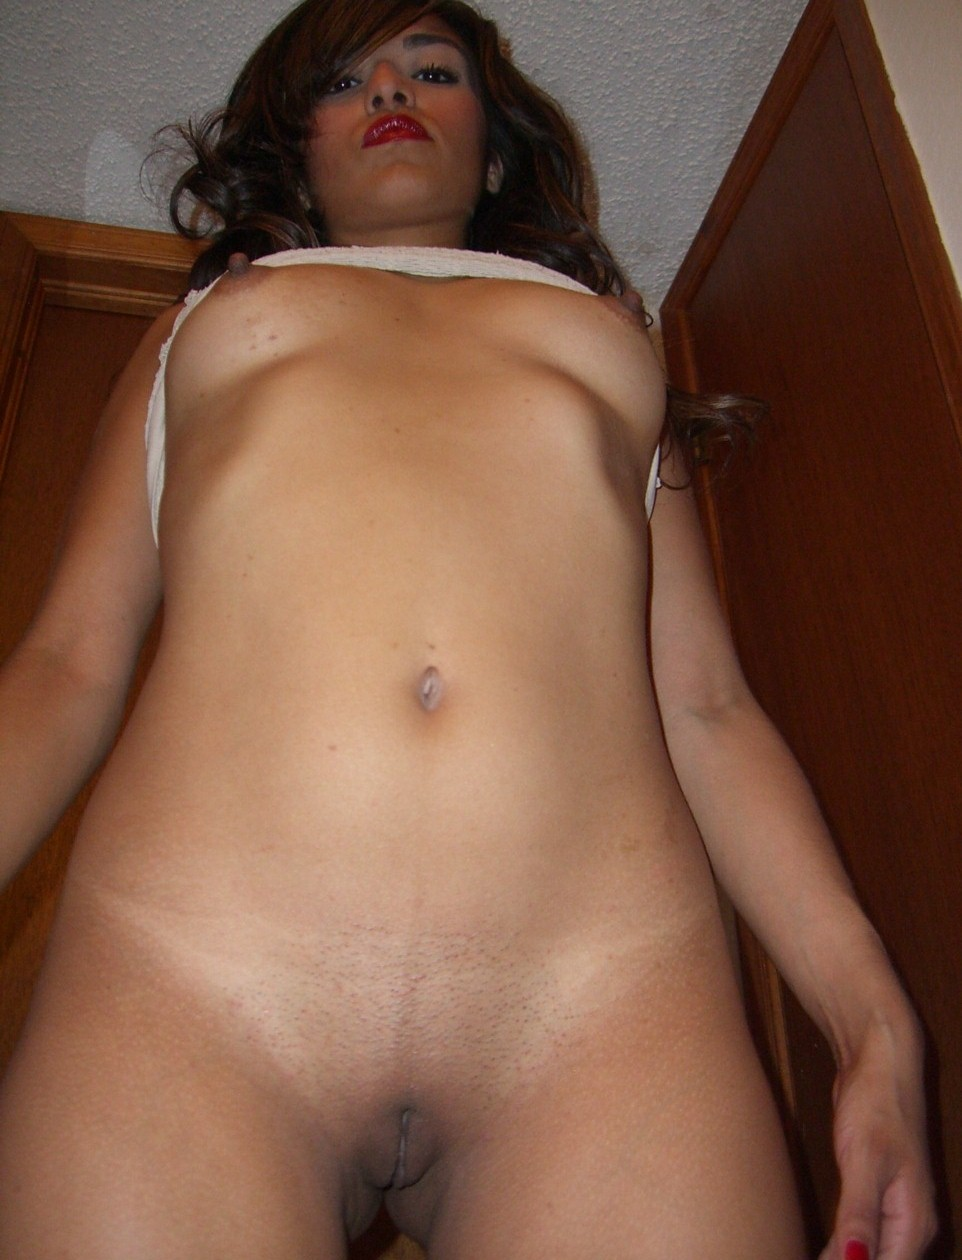 up standing nude women Looking